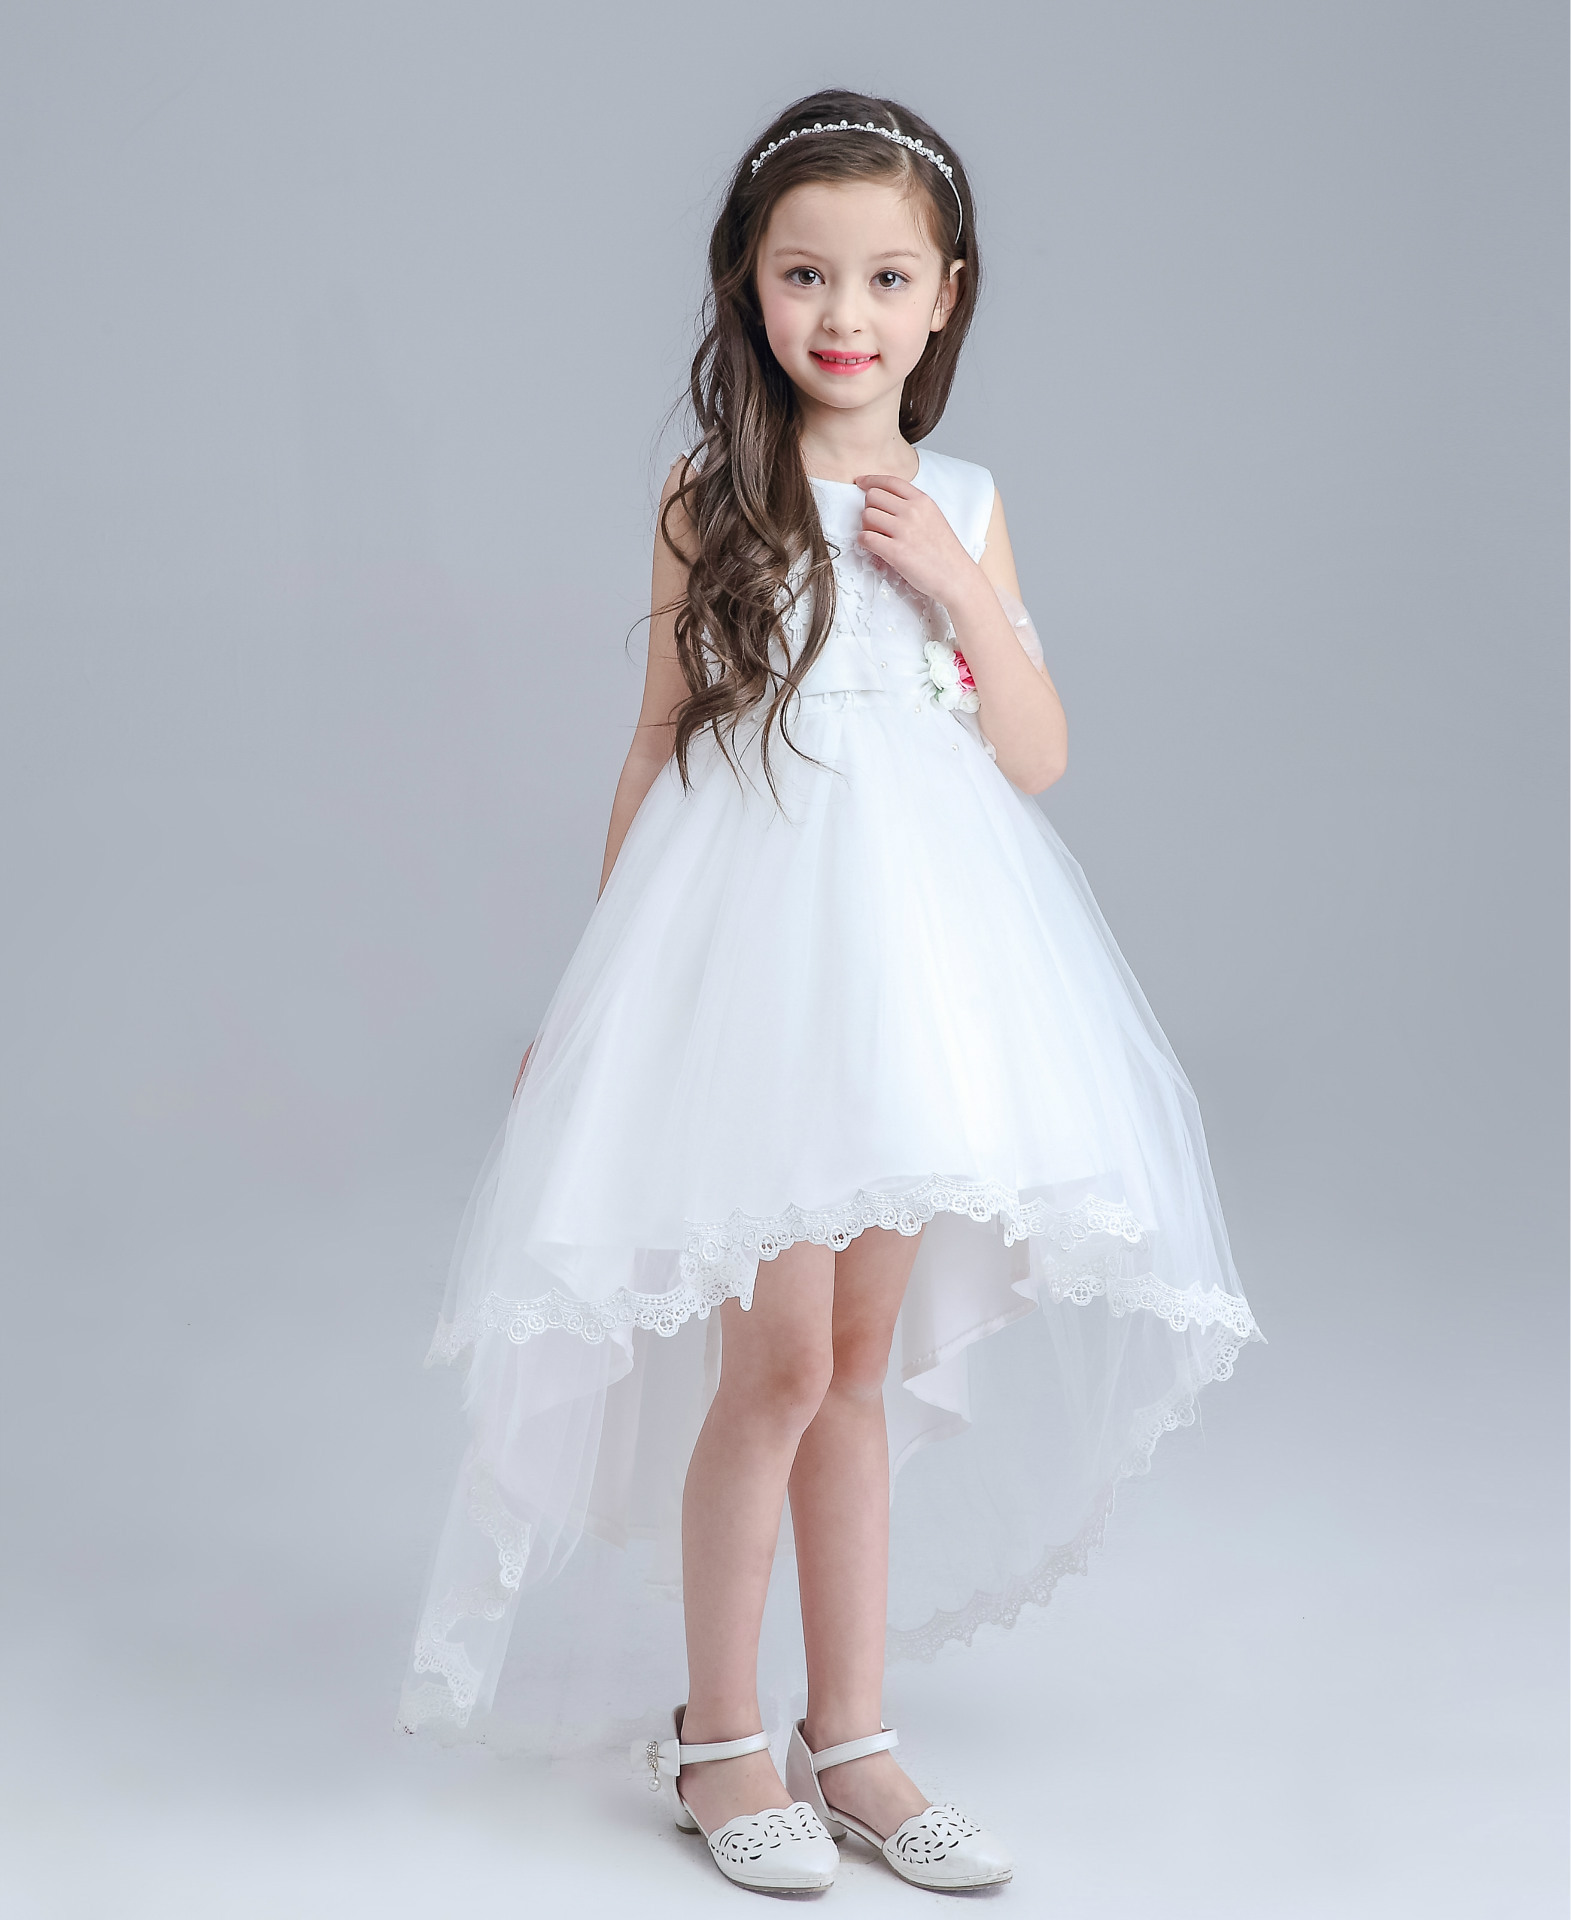 Pretty Party Dress Boys Pictures Inspiration - Wedding Ideas ...